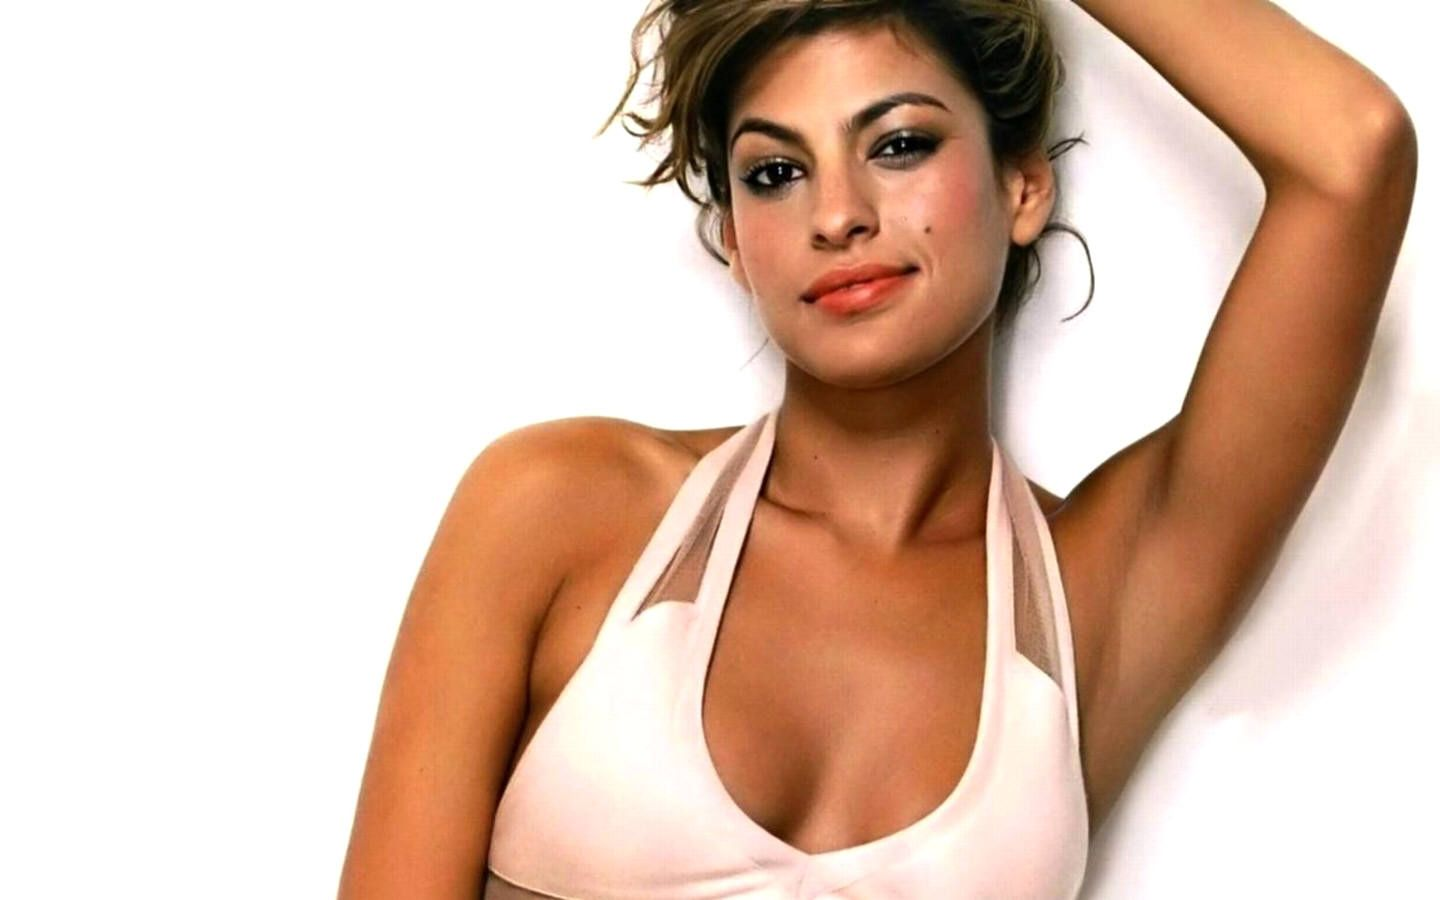 eva mendes wallpapers high quality download free | 3d wallpapers